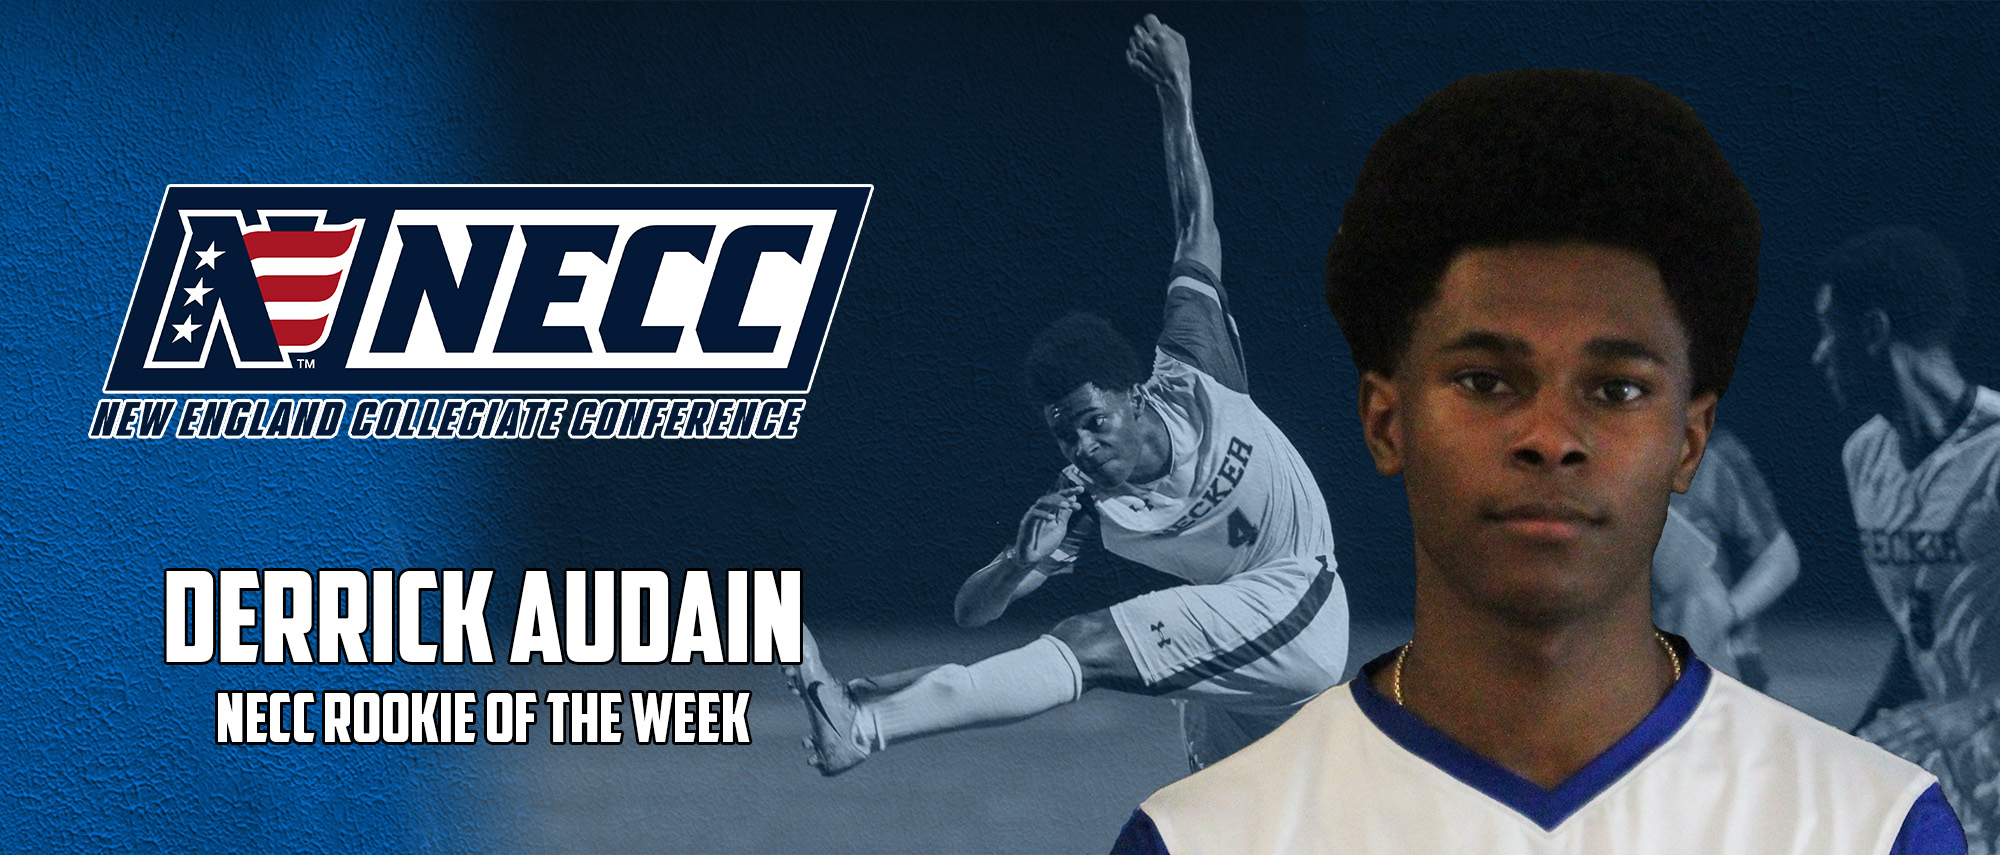 Derrick Audain - Rookie of the Week